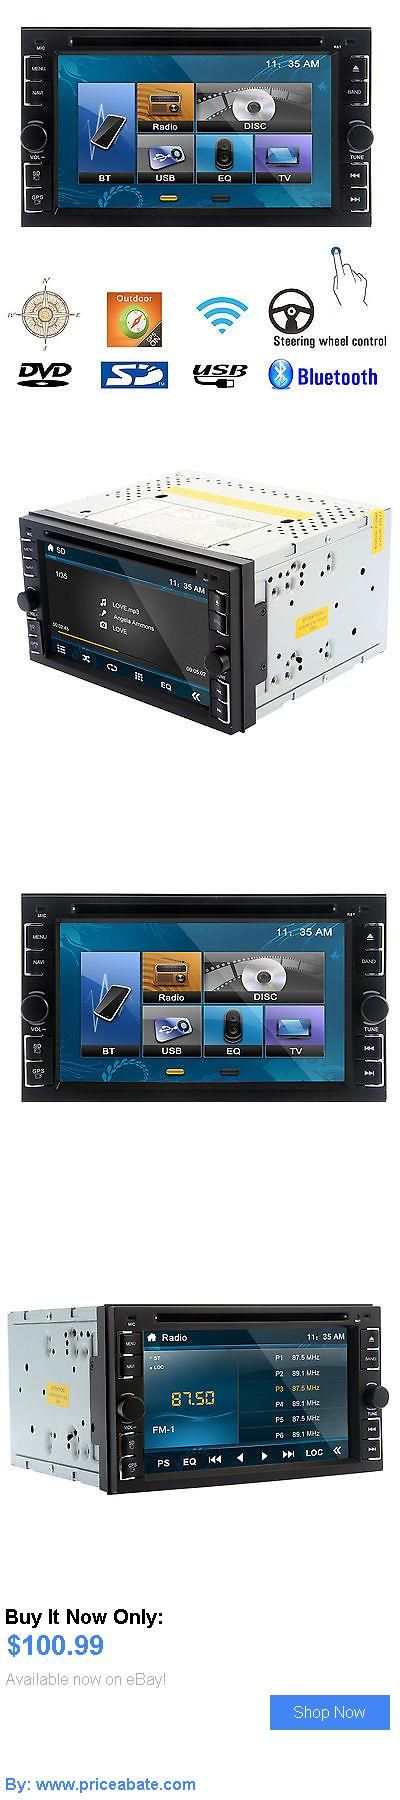 Vehicle Electronics And GPS: Double 2Din 6.2 Car Stereo Dvd Cd Mp3 Player Hd In Dash Bluetooth Ipod Tv Radio BUY IT NOW ONLY: $100.99 #priceabateVehicleElectronicsAndGPS OR #priceabate